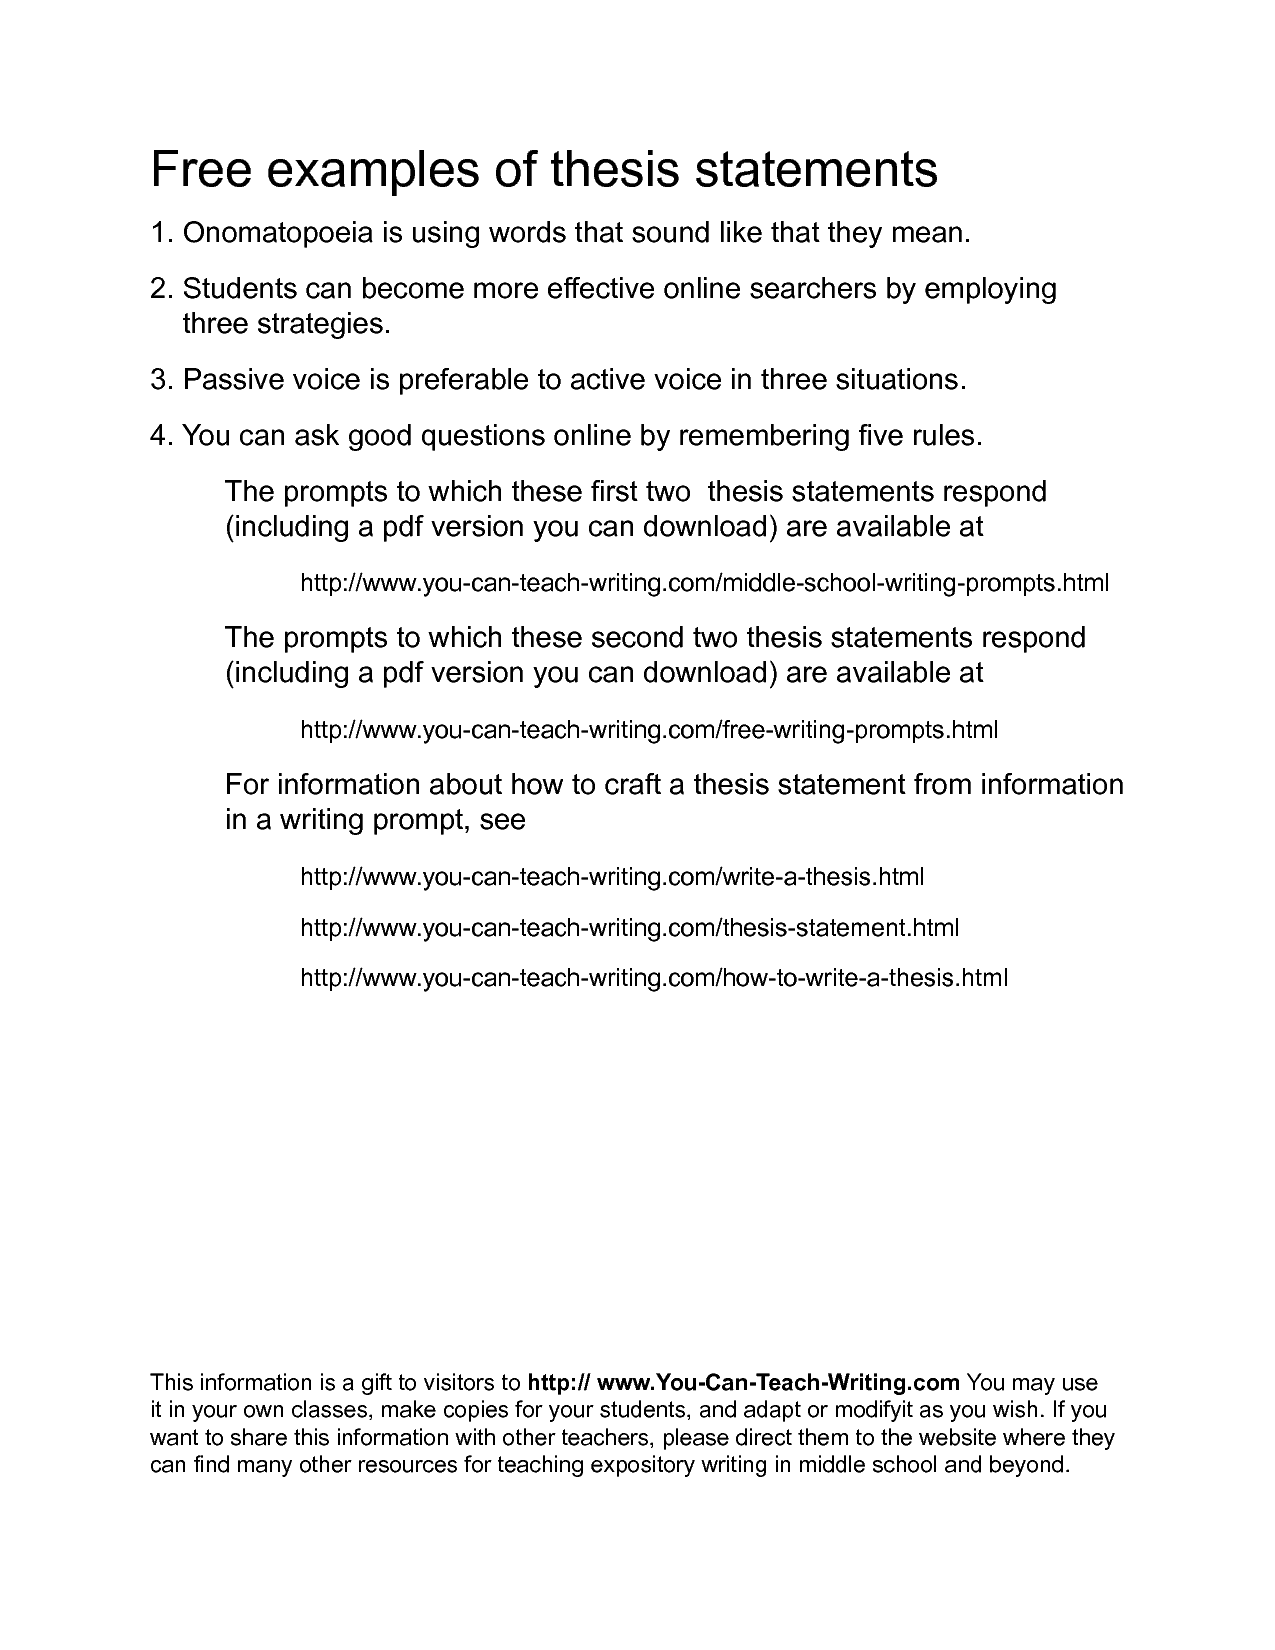 good thesis statements for narrative essays A narrative essay when you know where you are going, you tend to get there in a well organized way with logical progression a good narrative essay thesis statement.